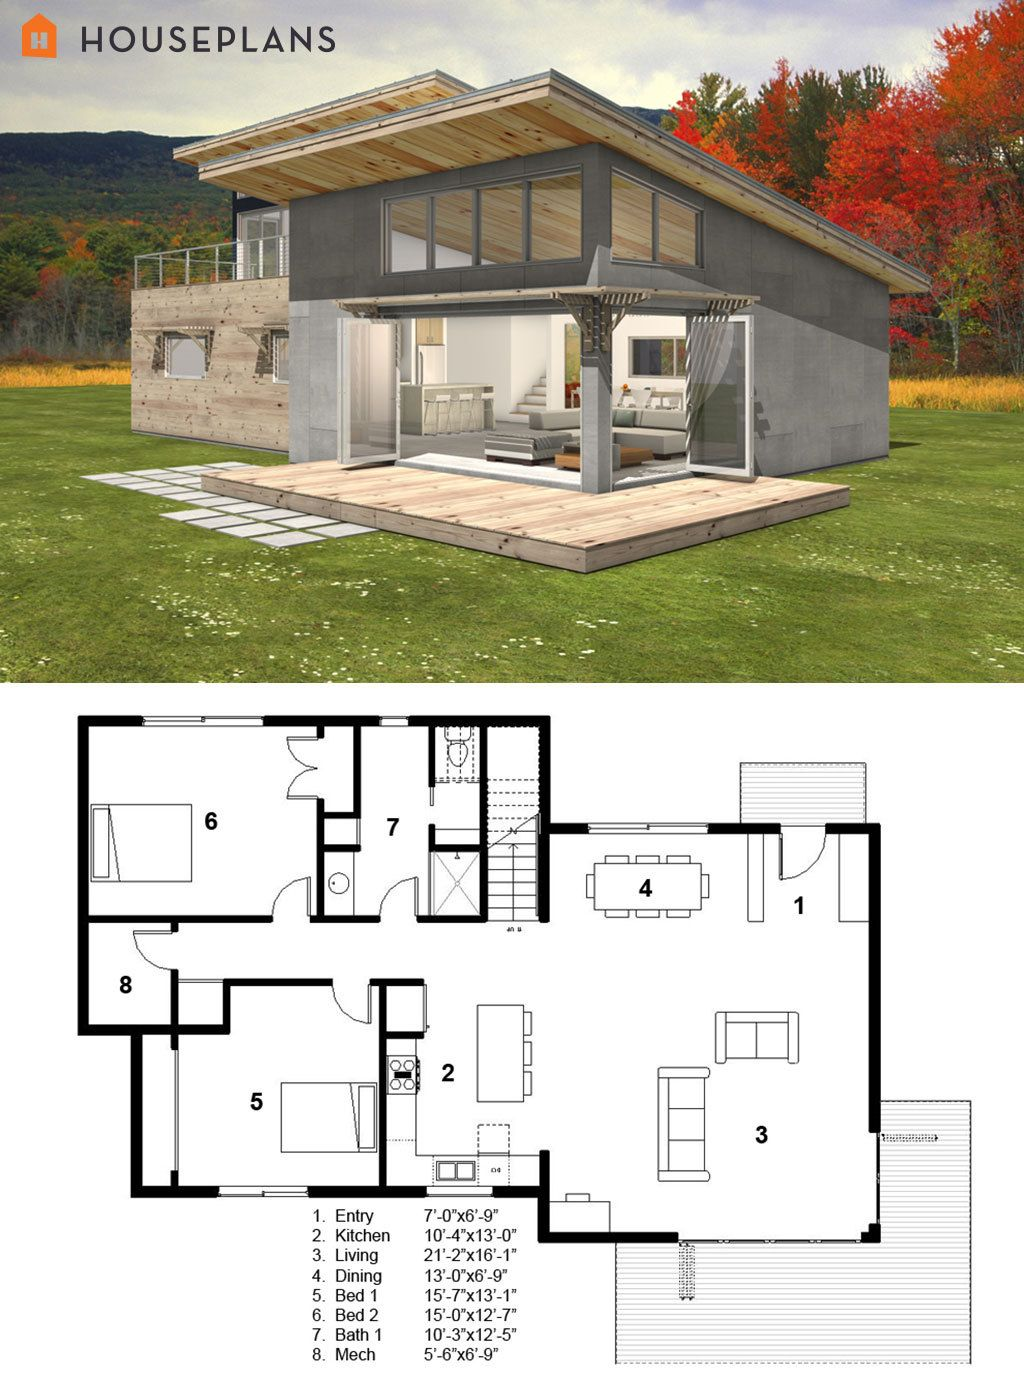 Small modern cabin house plan by freegreen energy for Modern house plans with cost to build